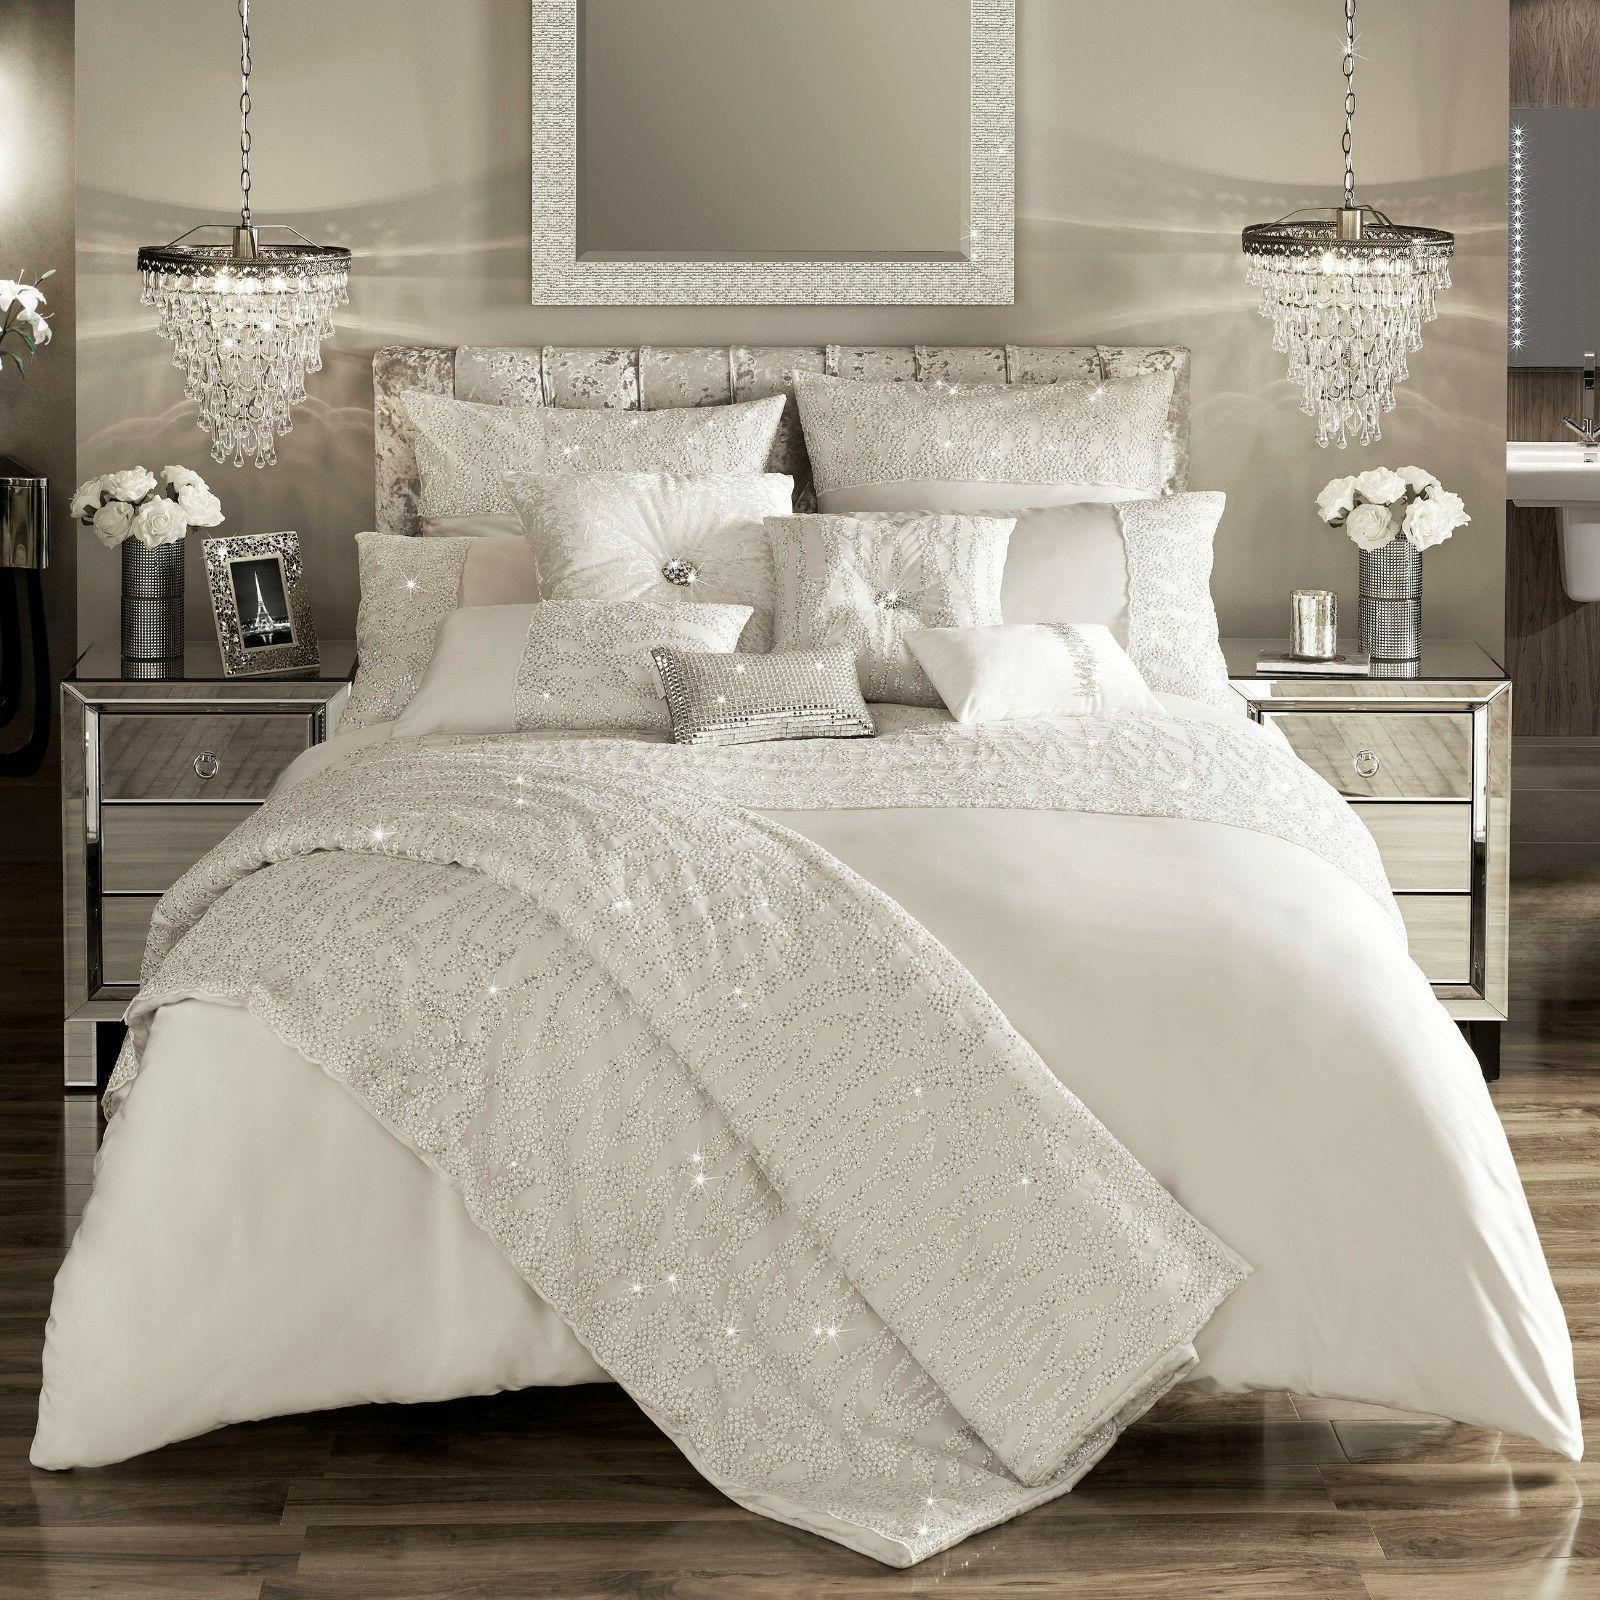 Kylie Minogue Bedding DARCEY Oyster / Ivory Duvet / Quilt Co